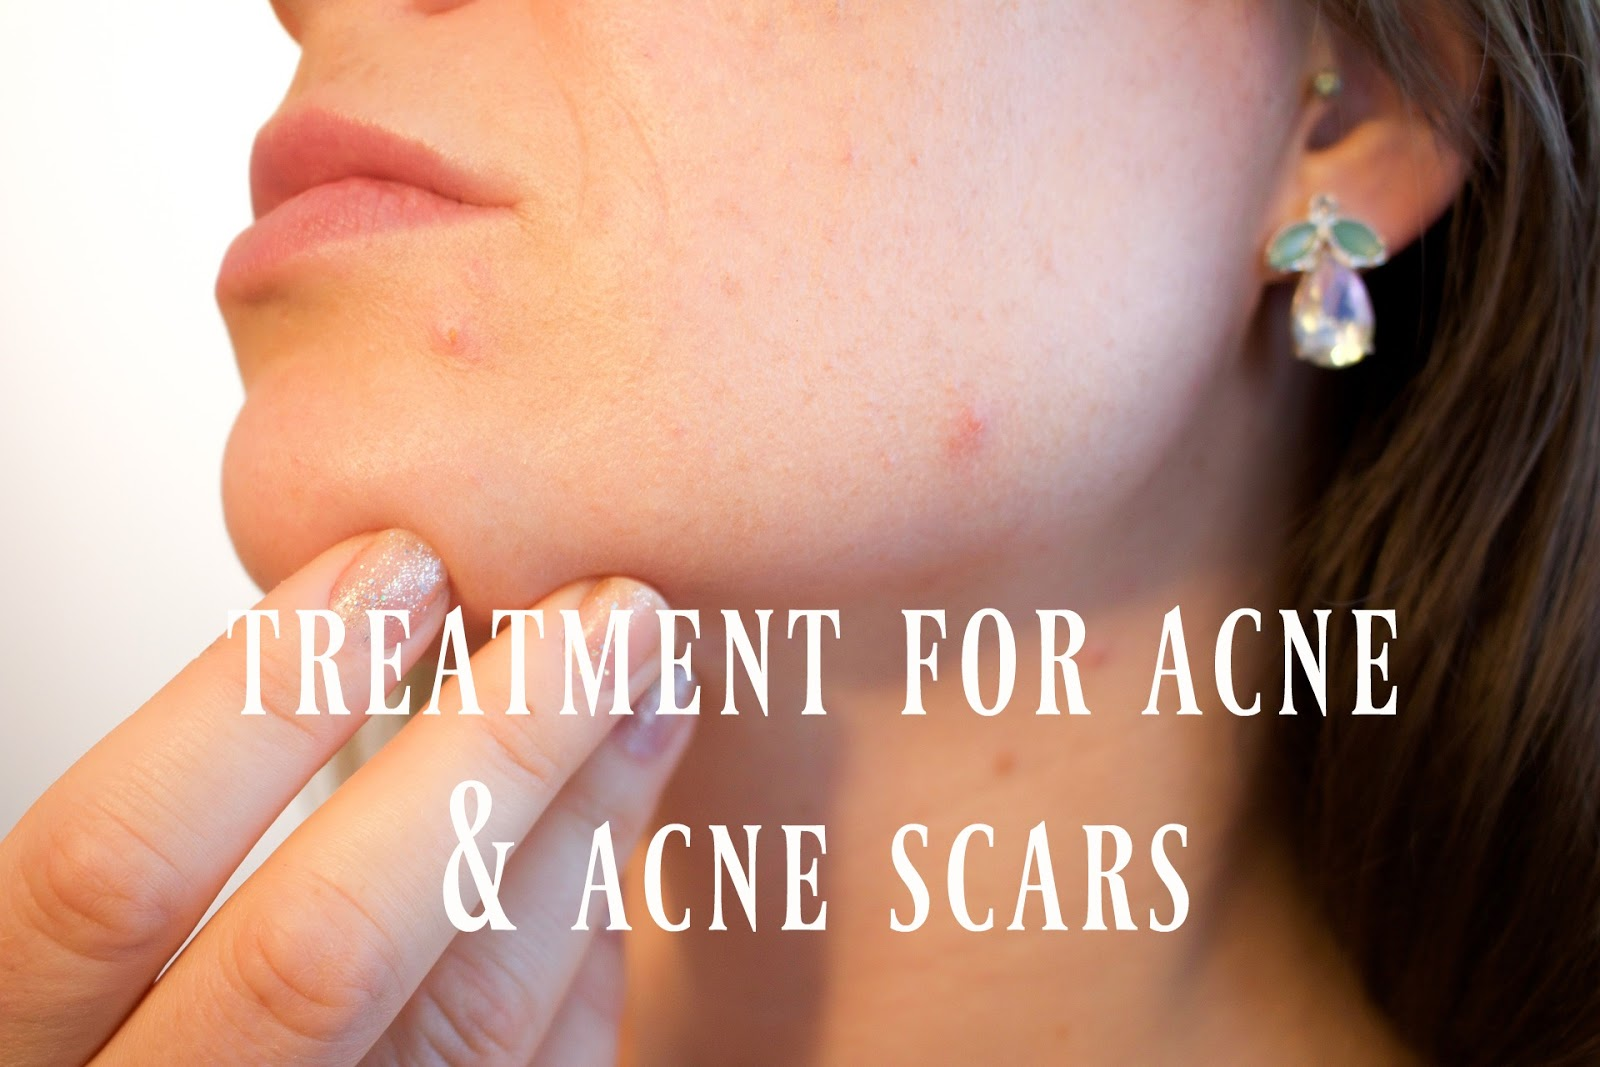 acne scars, acne treatment, laser treatment for acne